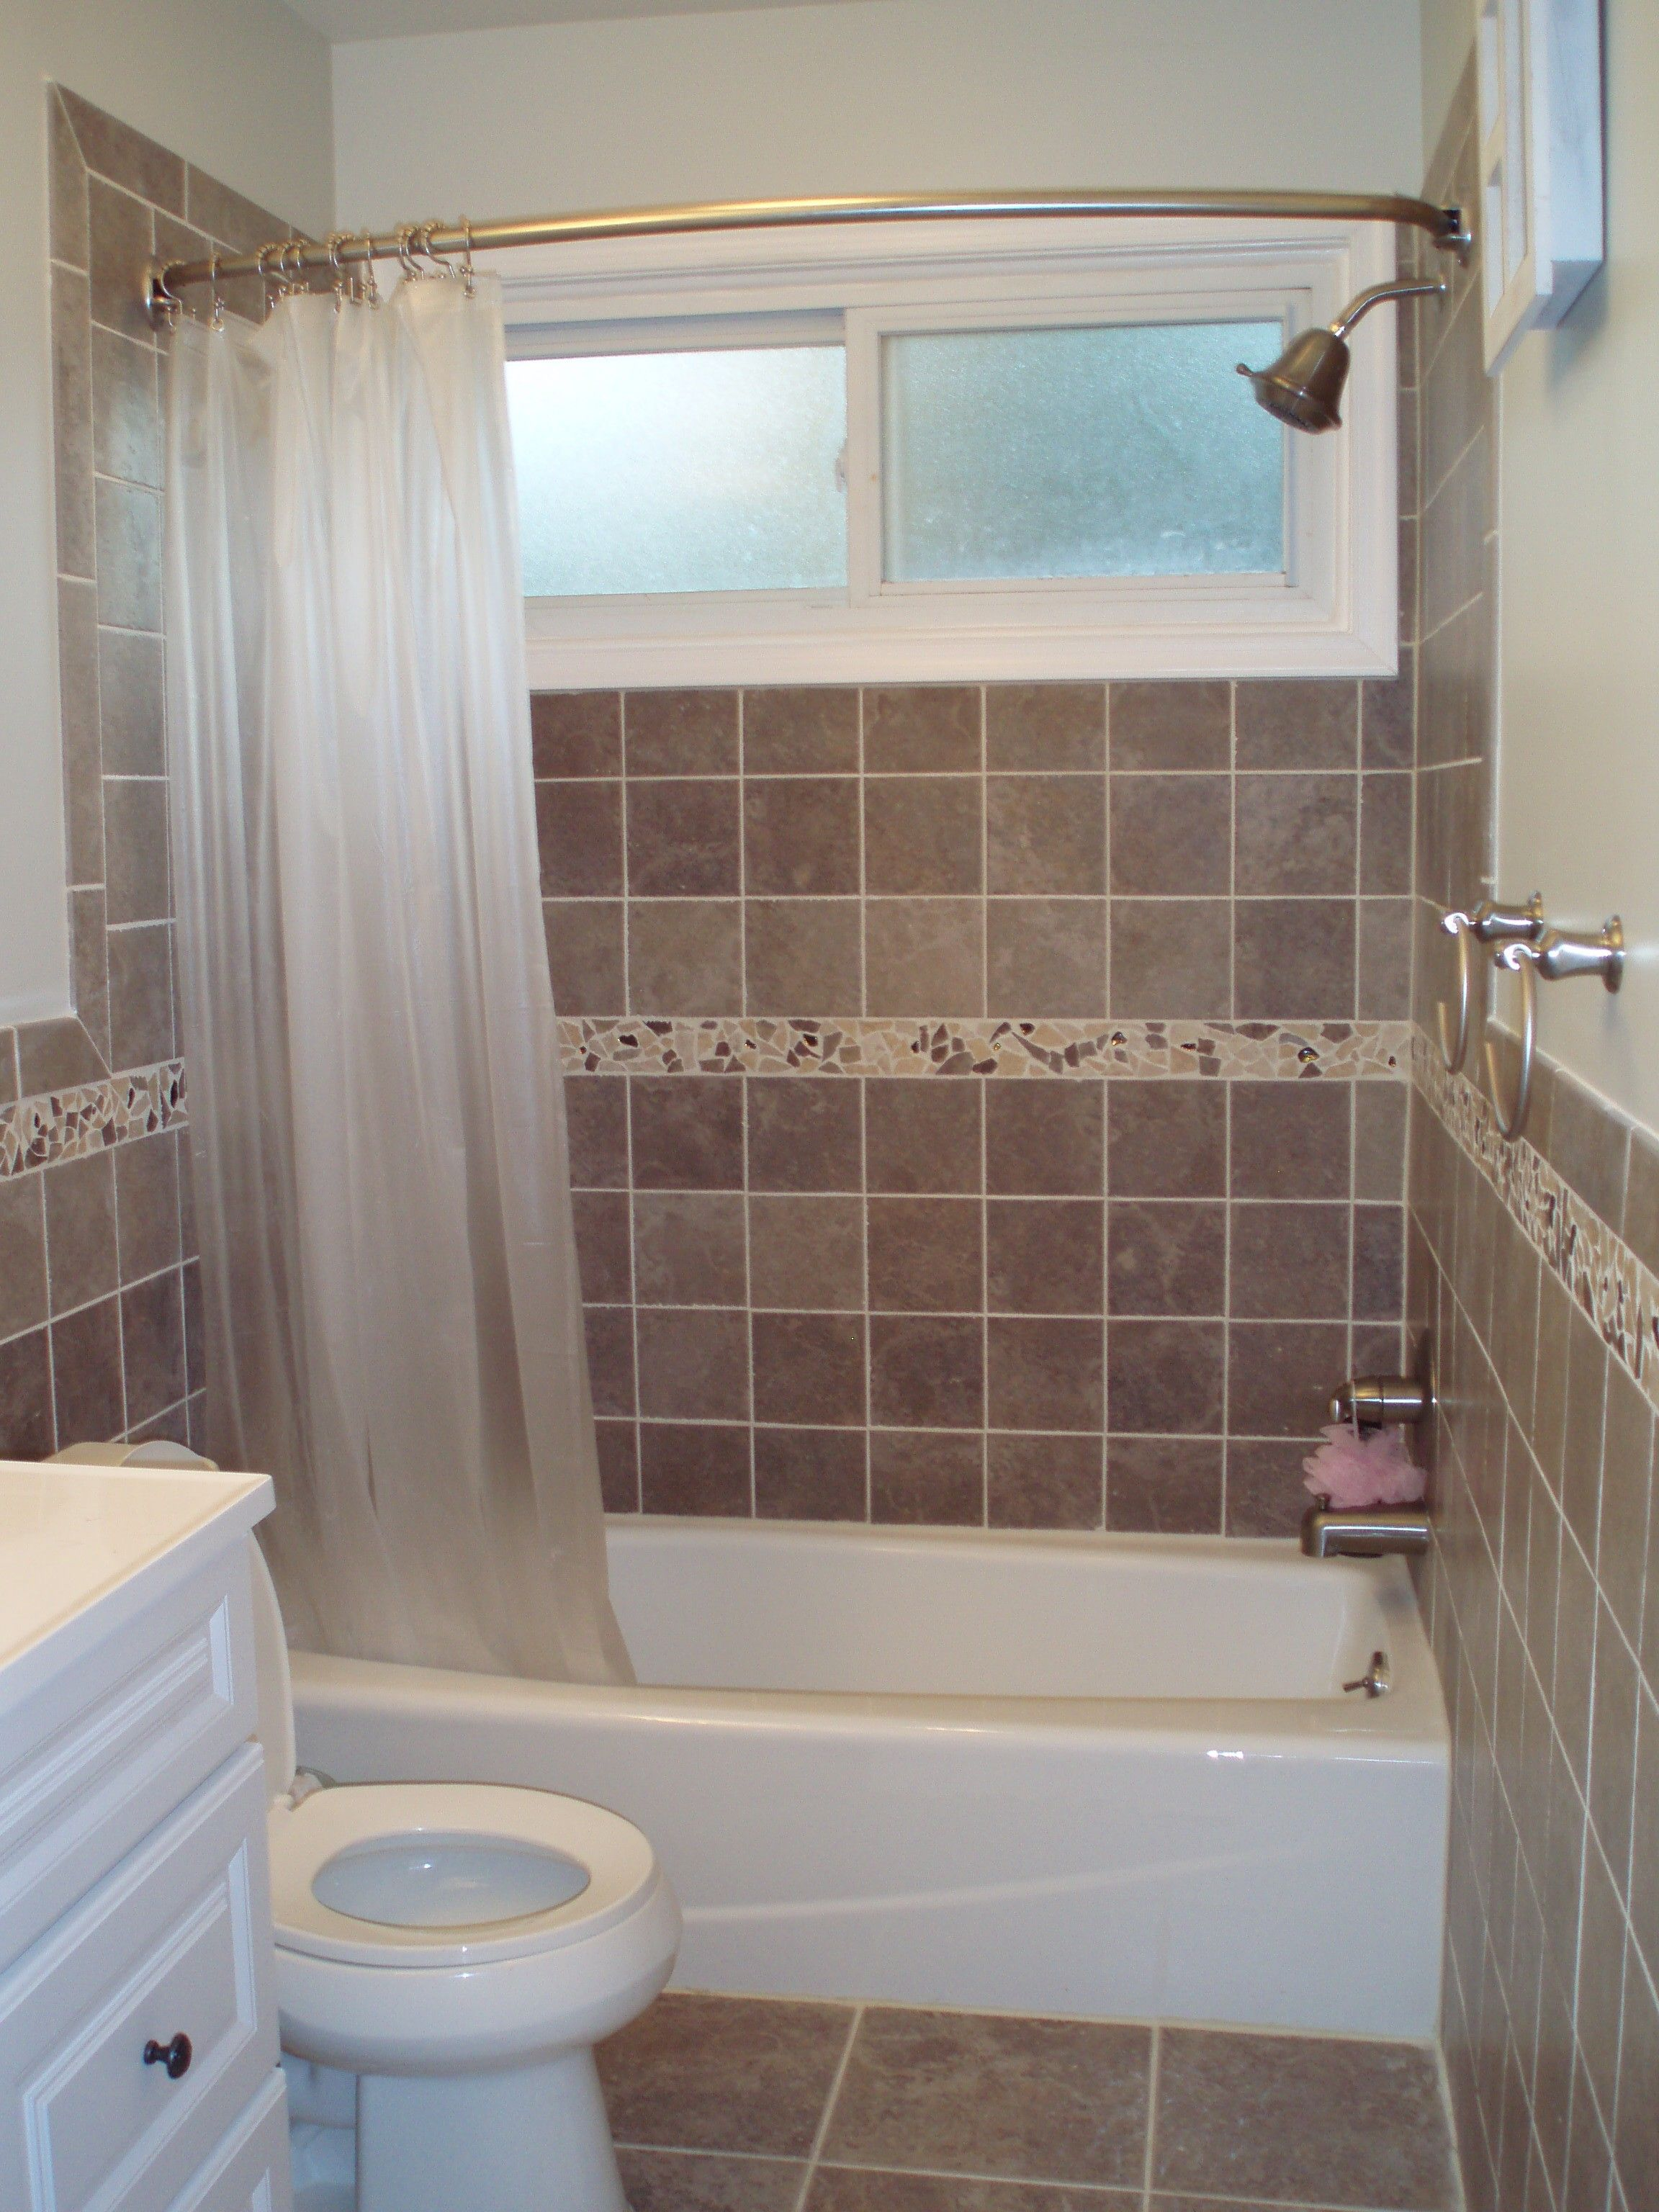 Small Bathroom Ideas With Tub And Shower showers with bullnose around window - google search | bathroom